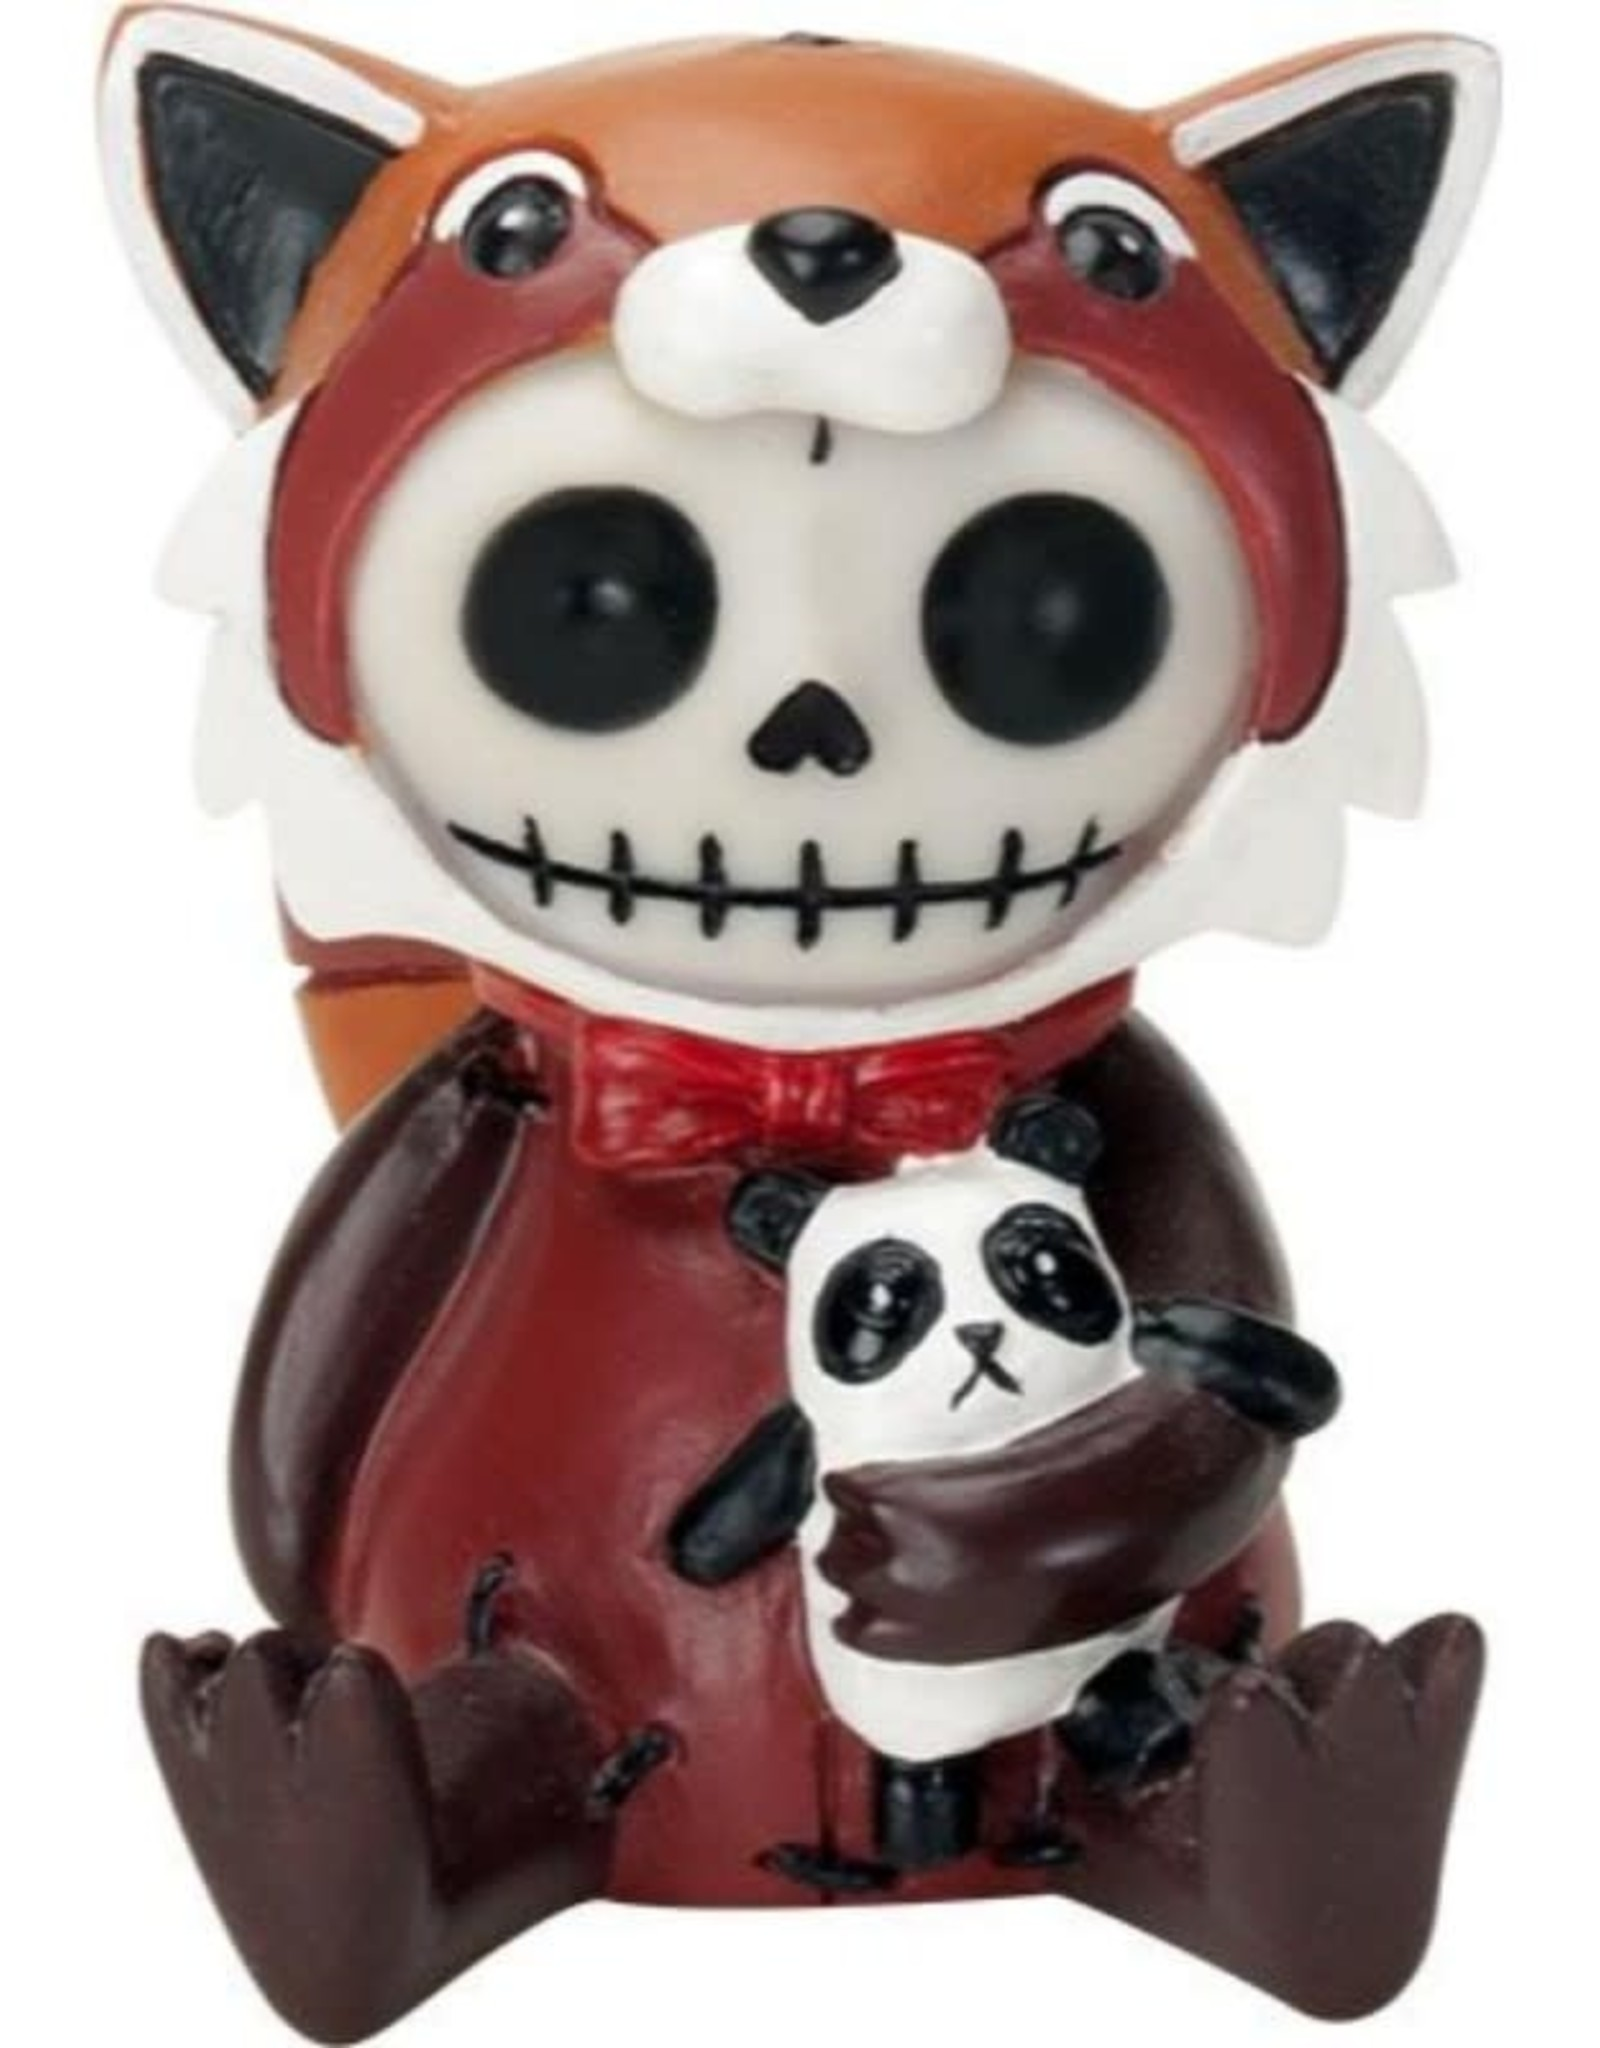 Furrybones Reddington  (Red Panda)